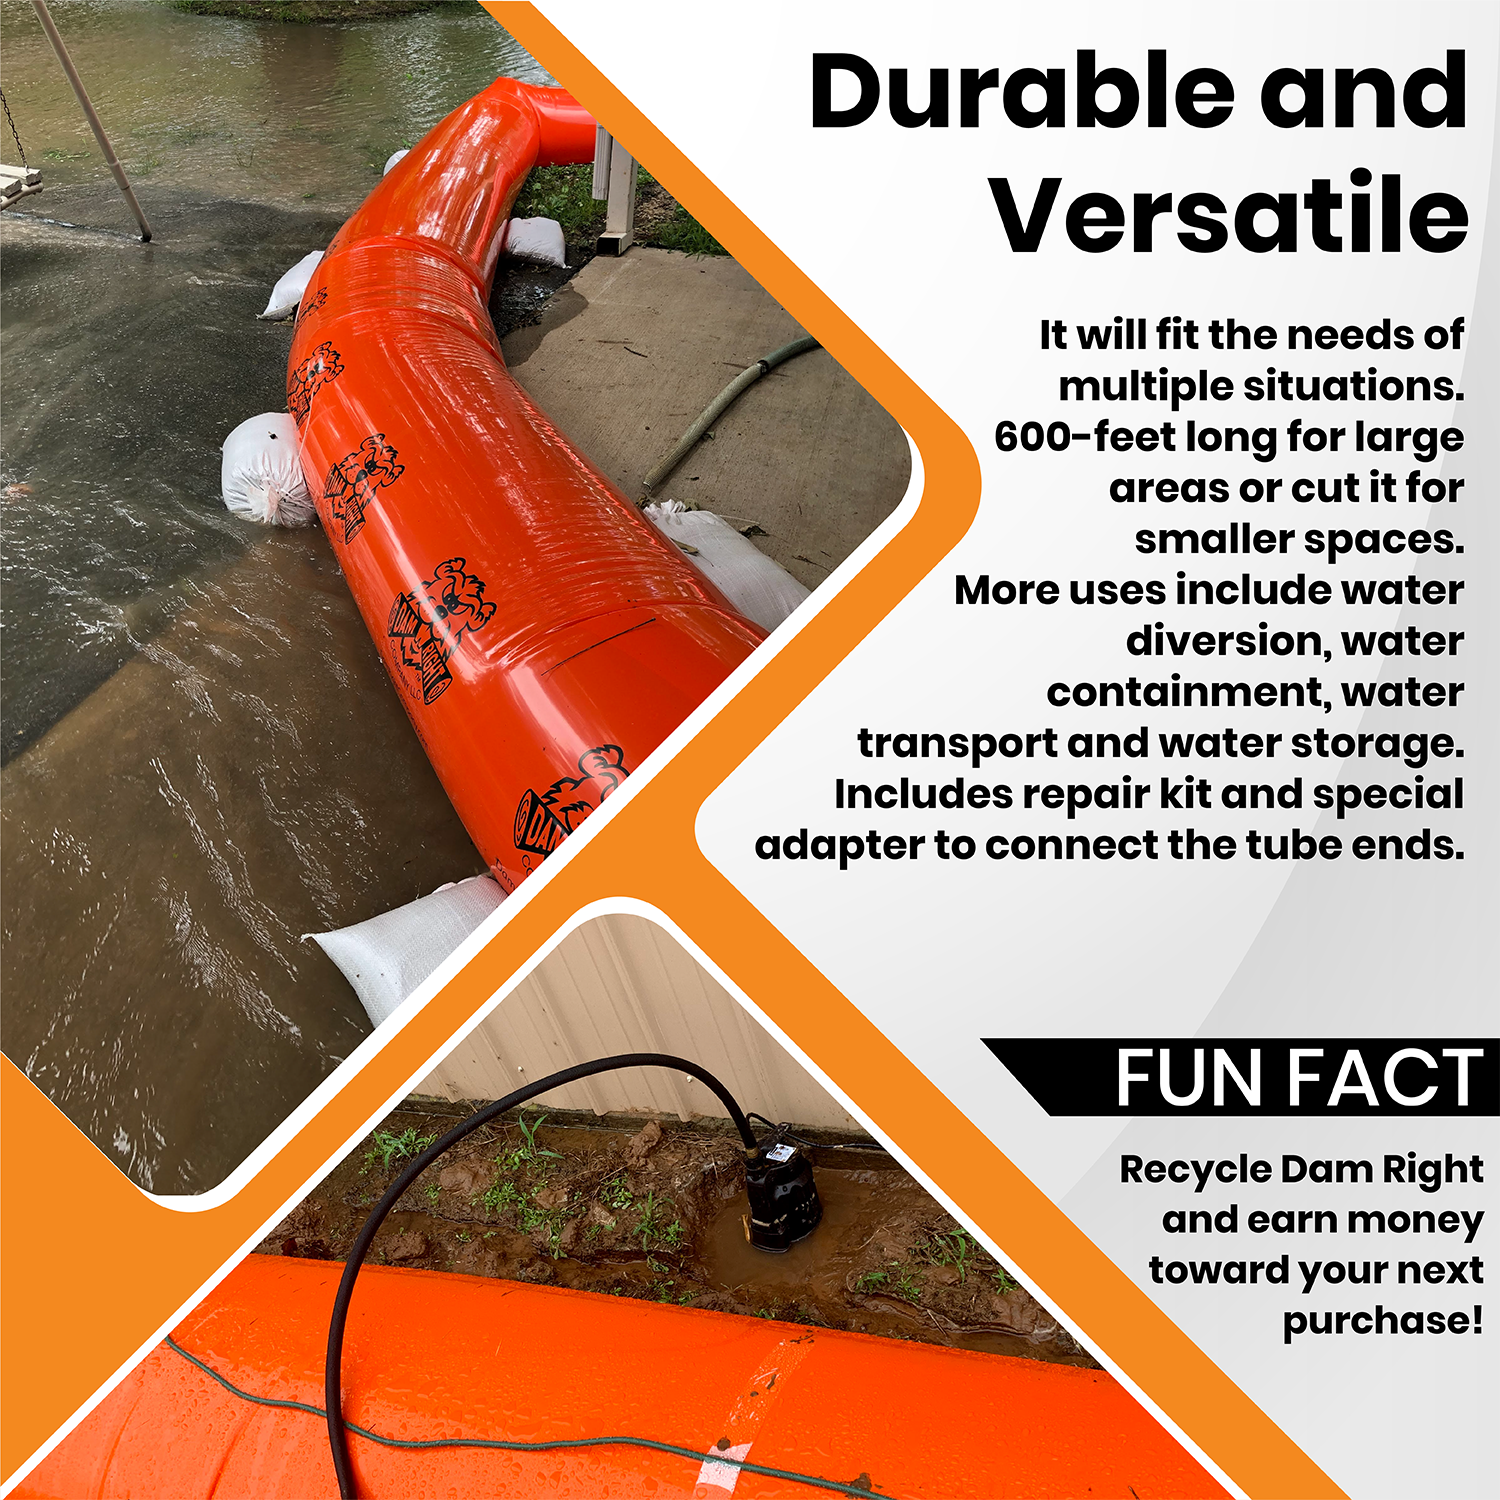 Durable and versatile flood prevention